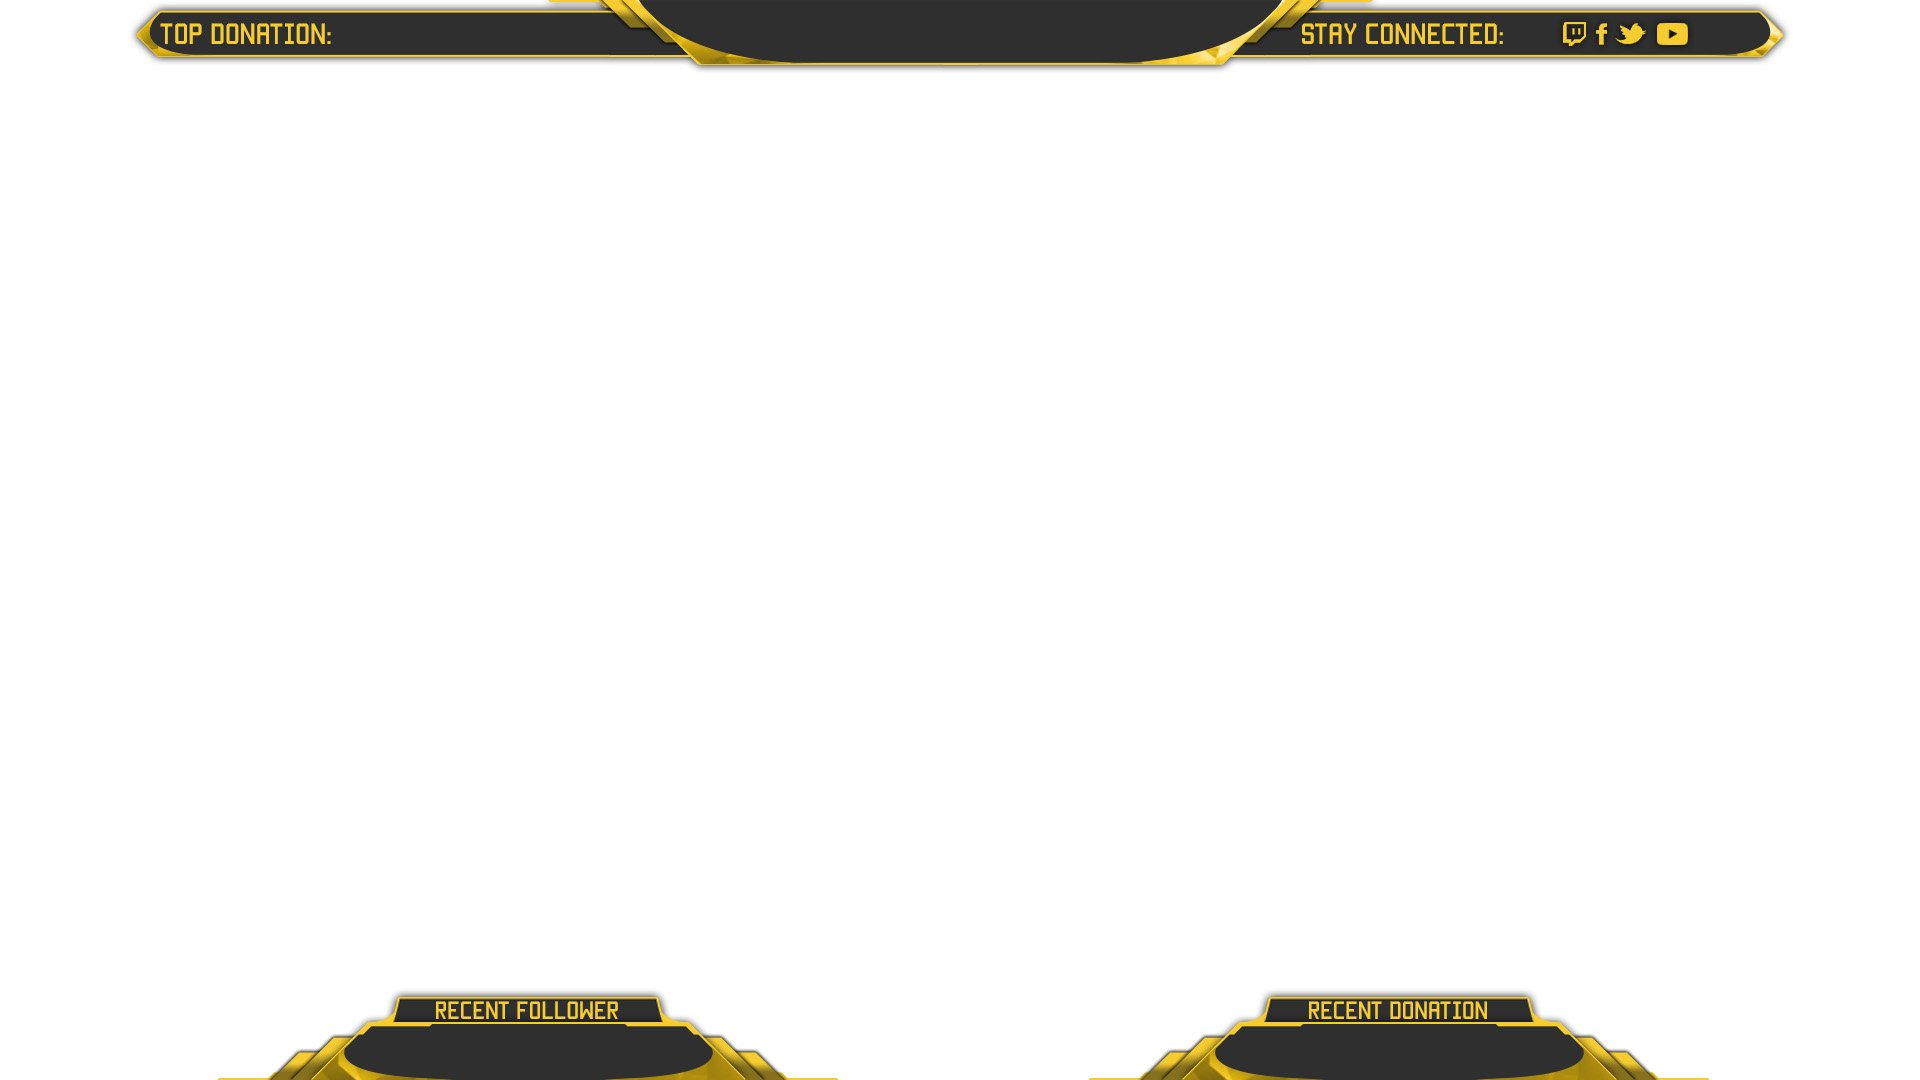 King of kill Playerunknowns Overlay download